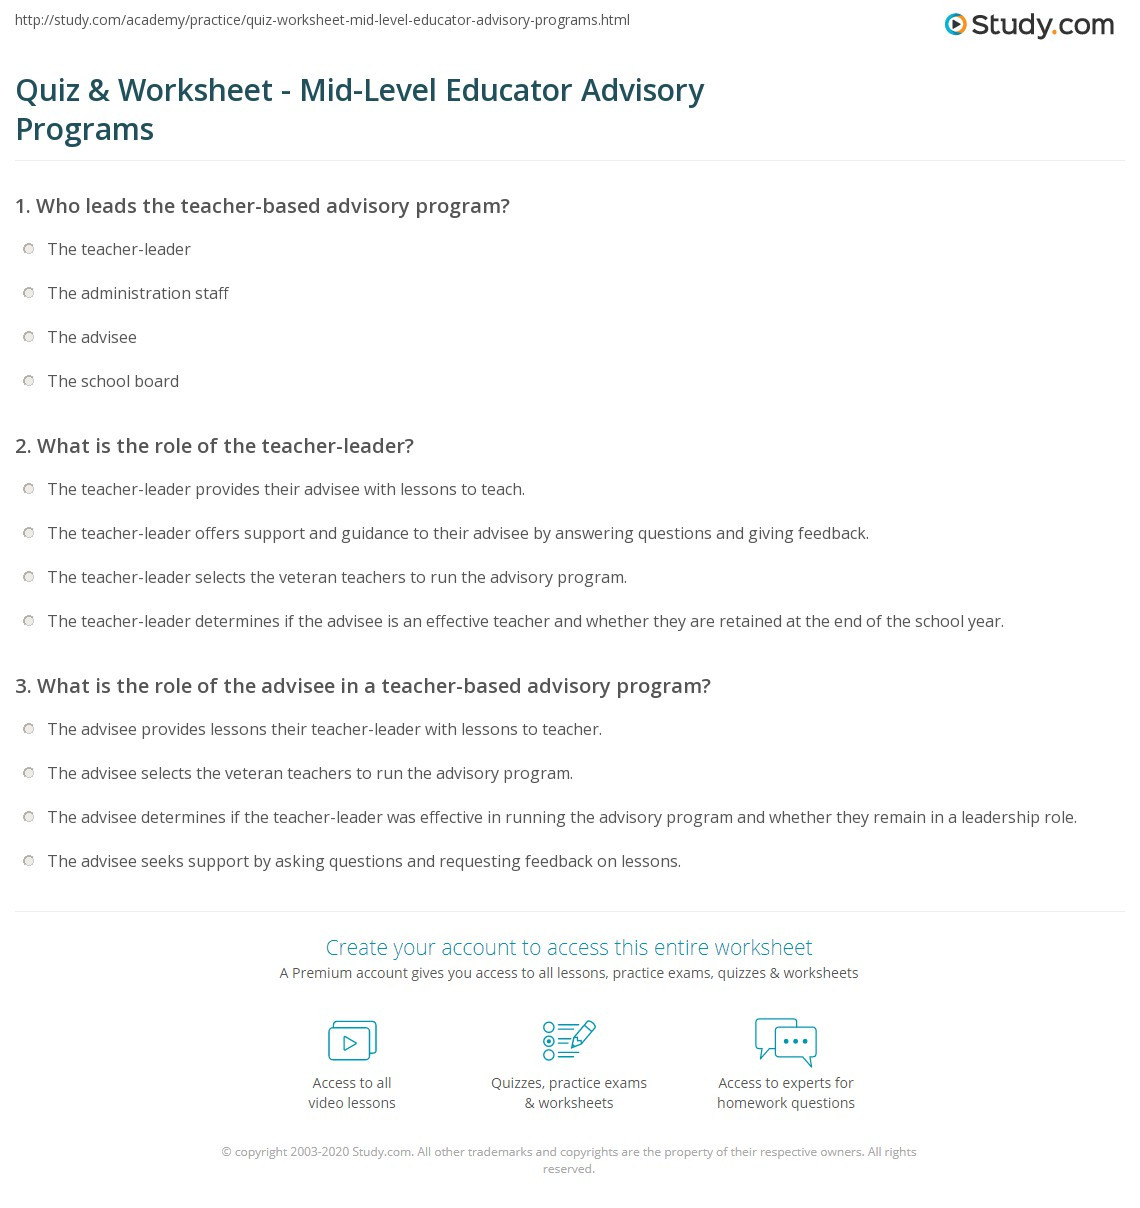 Advisory Worksheets for Middle School Quiz & Worksheet Mid Level Educator Advisory Programs